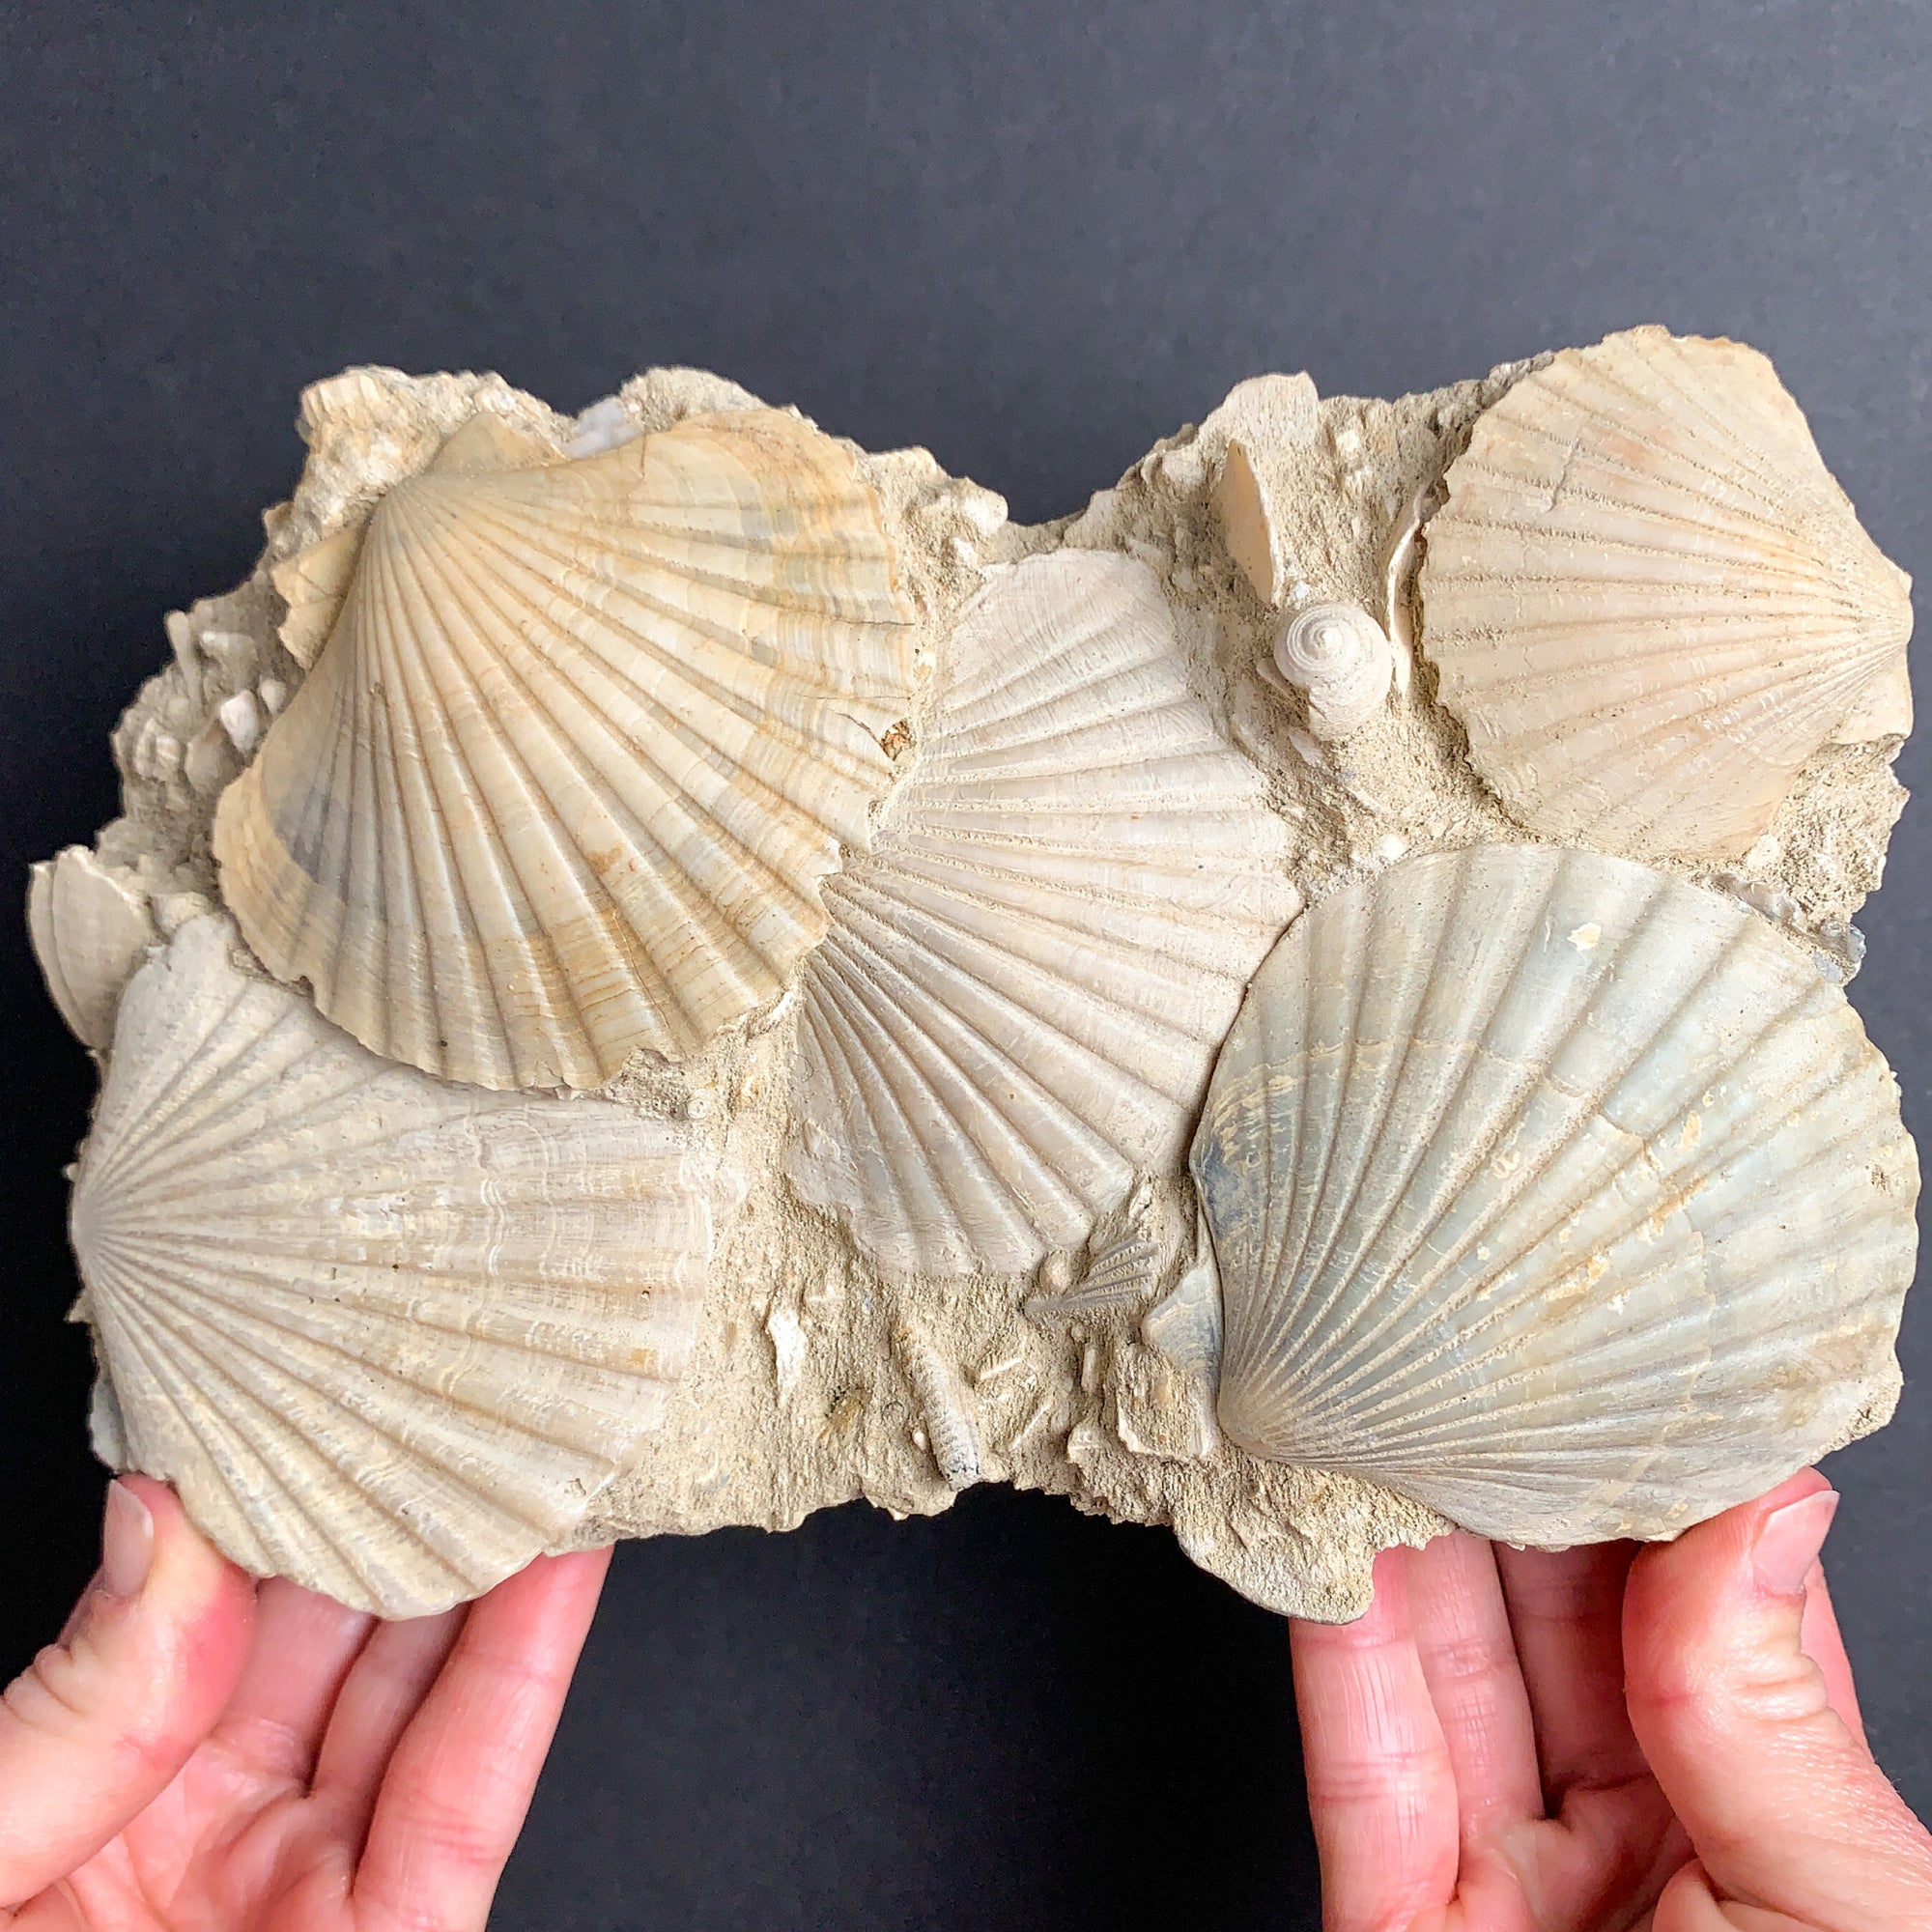 Large Fossilized Pecten Shells from France